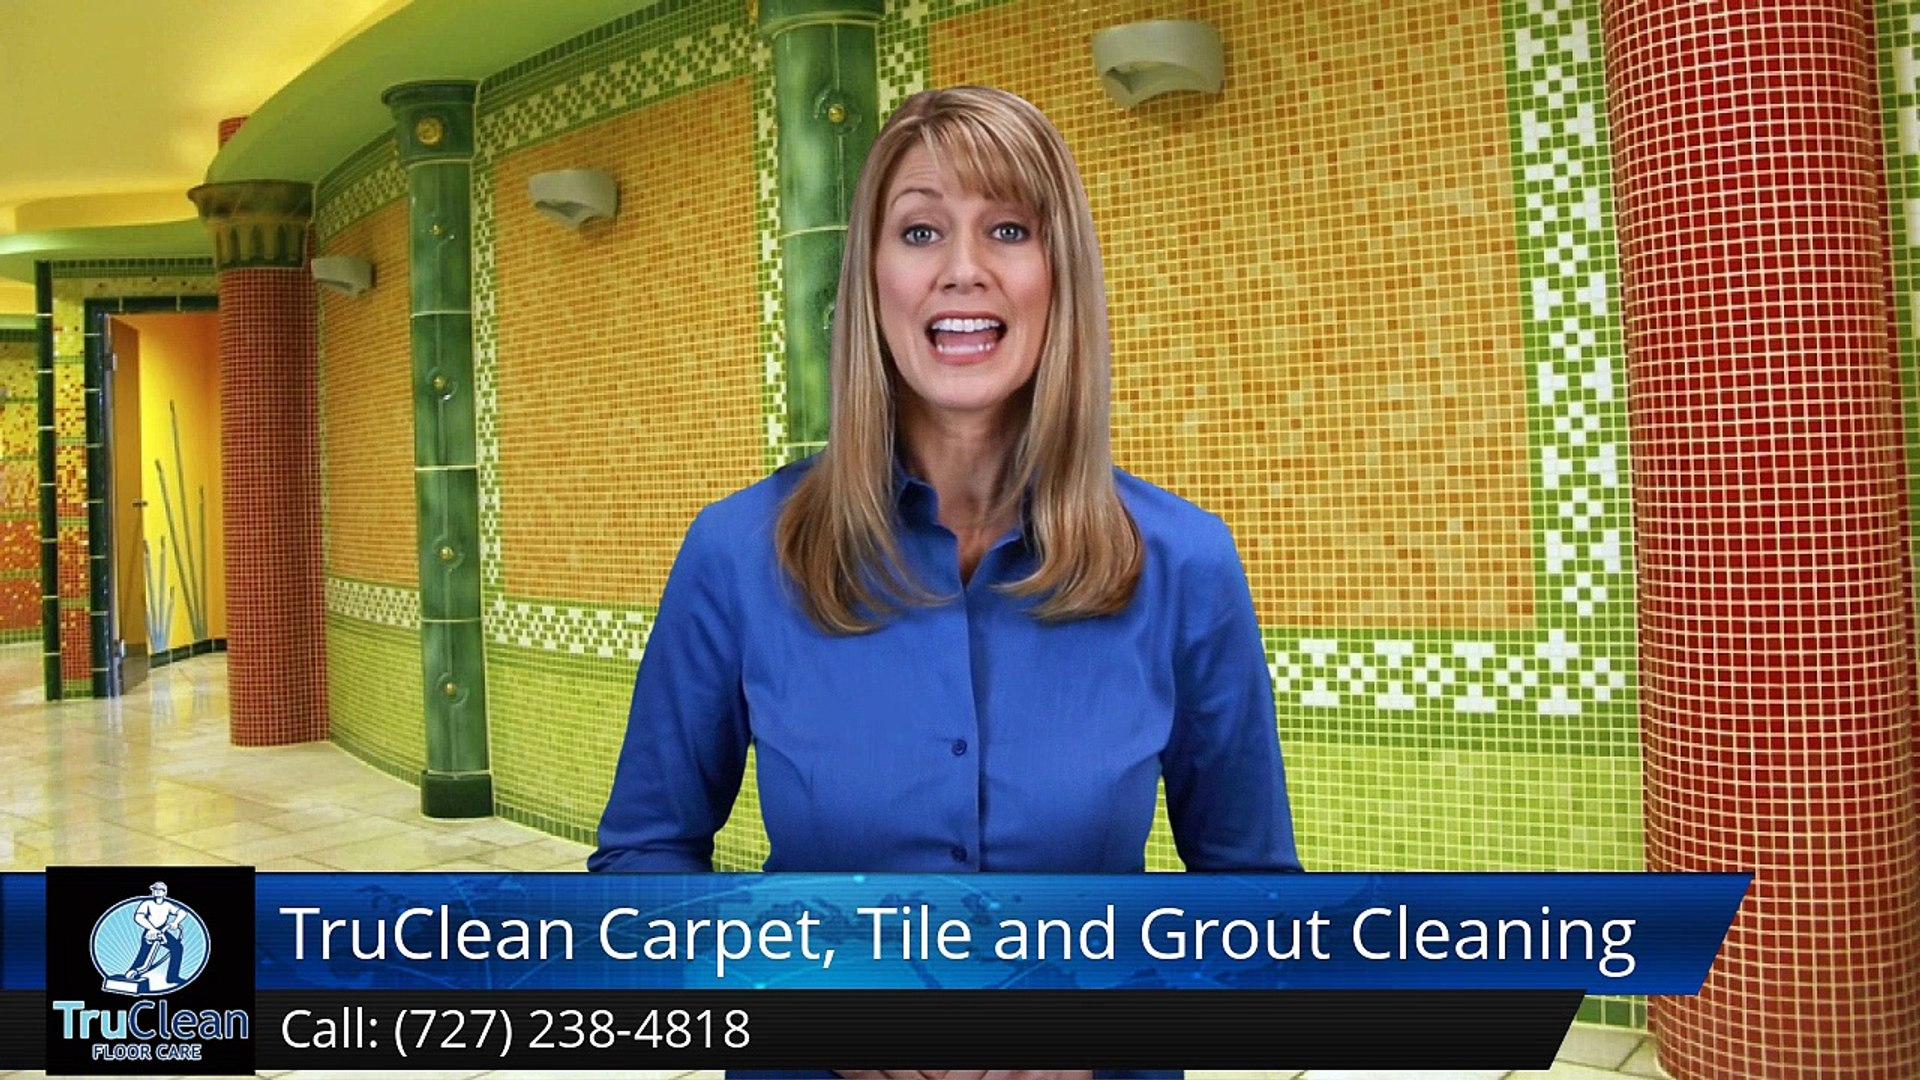 Clearwater FL Carpet Cleaning & Tile & Grout Reviews, TruClean Floor Care Clearwater FL